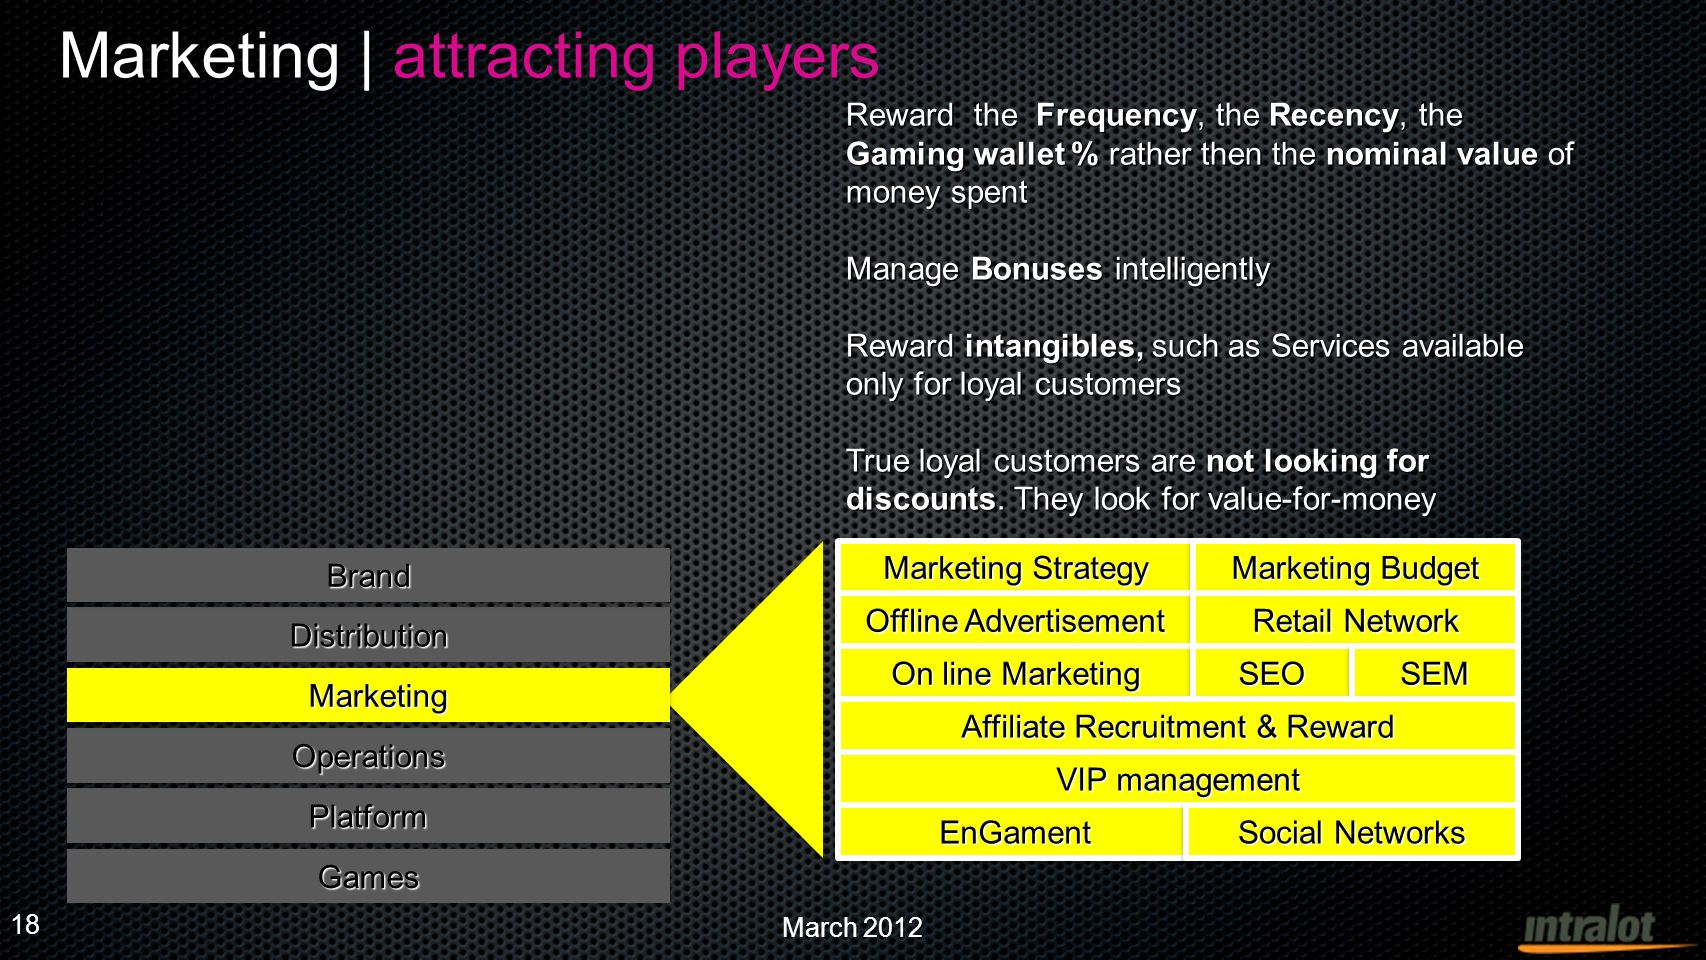 March 2012 PlatformPlatform OperationsOperations Marketing Marketing DistributionDistribution GamesGames BrandBrand Reward the Frequency, the Recency, the Gaming wallet % rather then the nominal value of money spent Manage Bonuses intelligently Reward intangibles, such as Services available only for loyal customers True loyal customers are not looking for discounts.